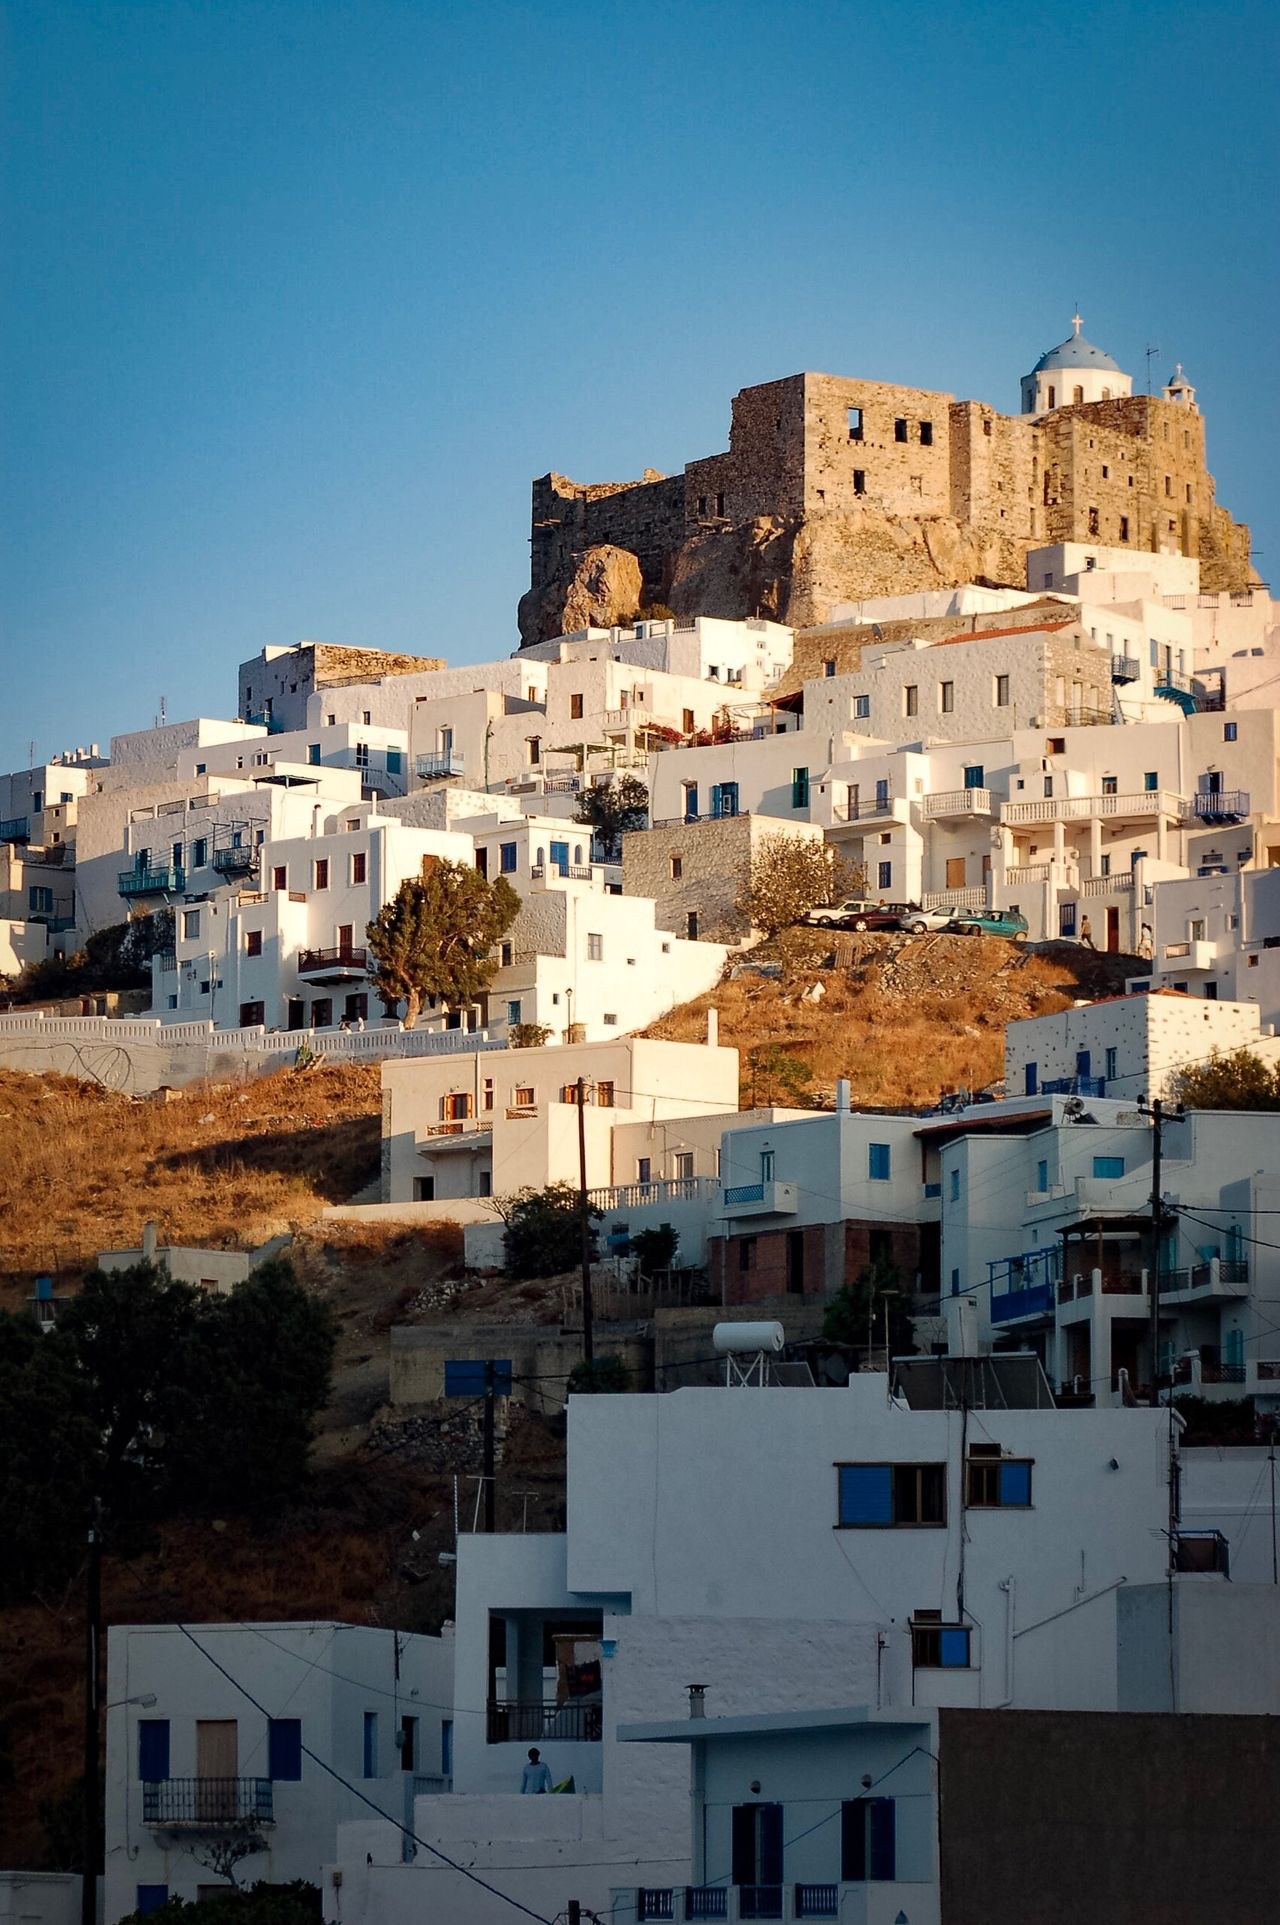 Astypalaia Aegean Island Greece Dodecanese Architecture Travel Clear Sky Chora Castle